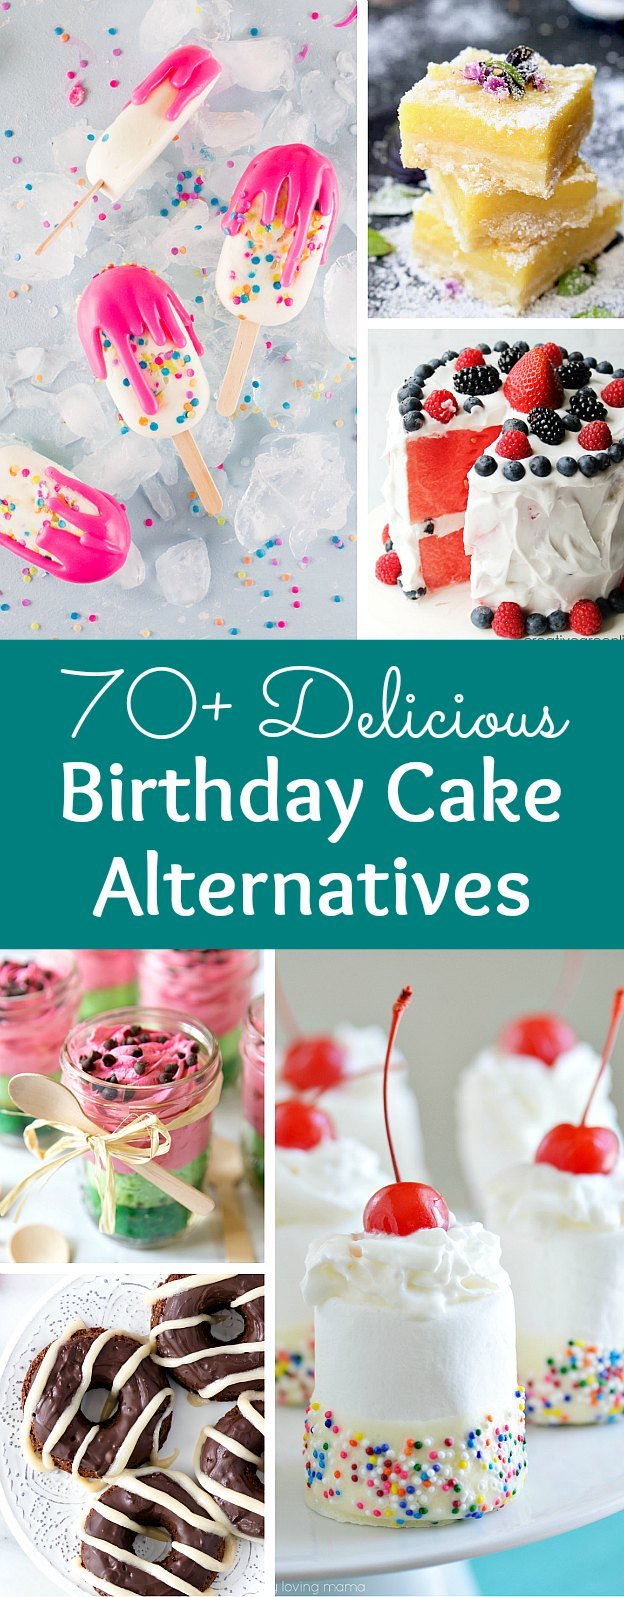 The ultimate Birthday Cake Alternatives roundup ... over 70 delicious recipes perfect for adults and for kids alike! These fun dessert ideas range from healthy to decadent. Awesome non cake birthday ideas your whole family will love! | Hello Little Home